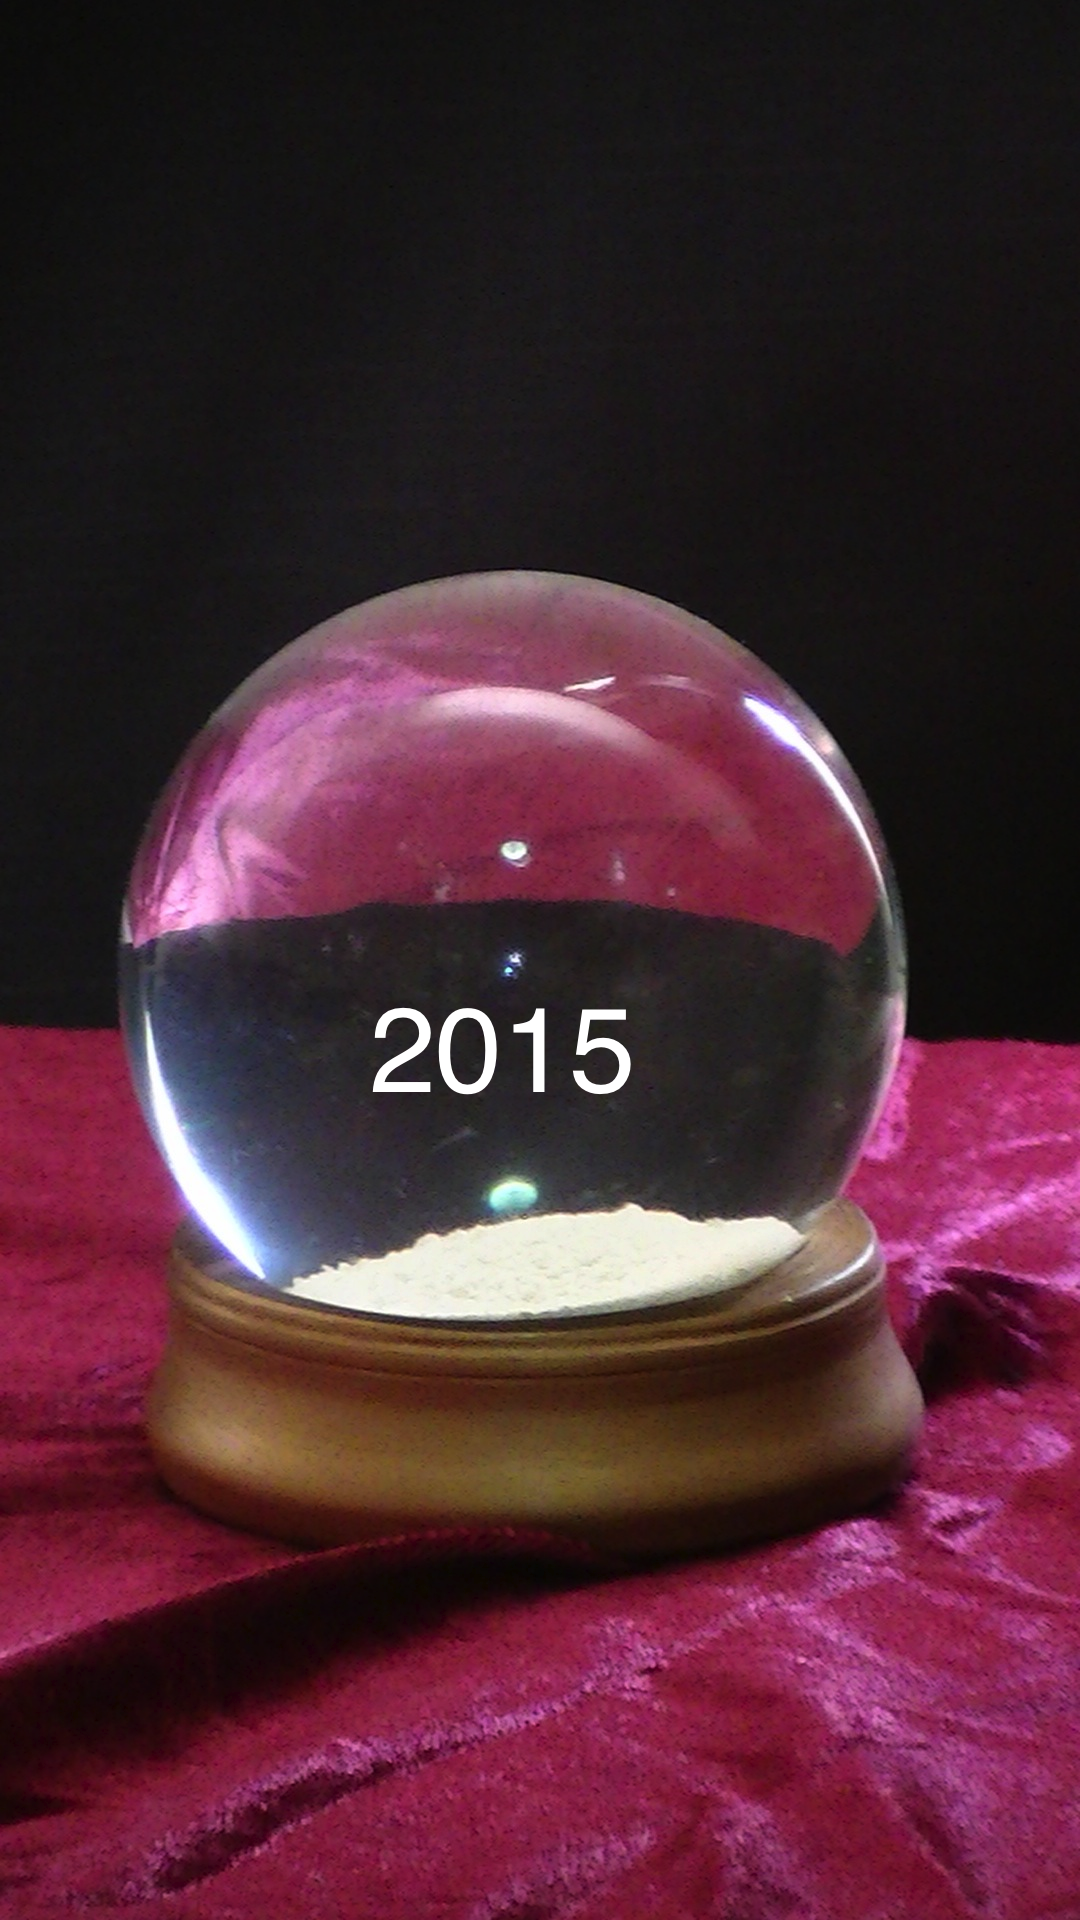 What Lies in Store in 2015?